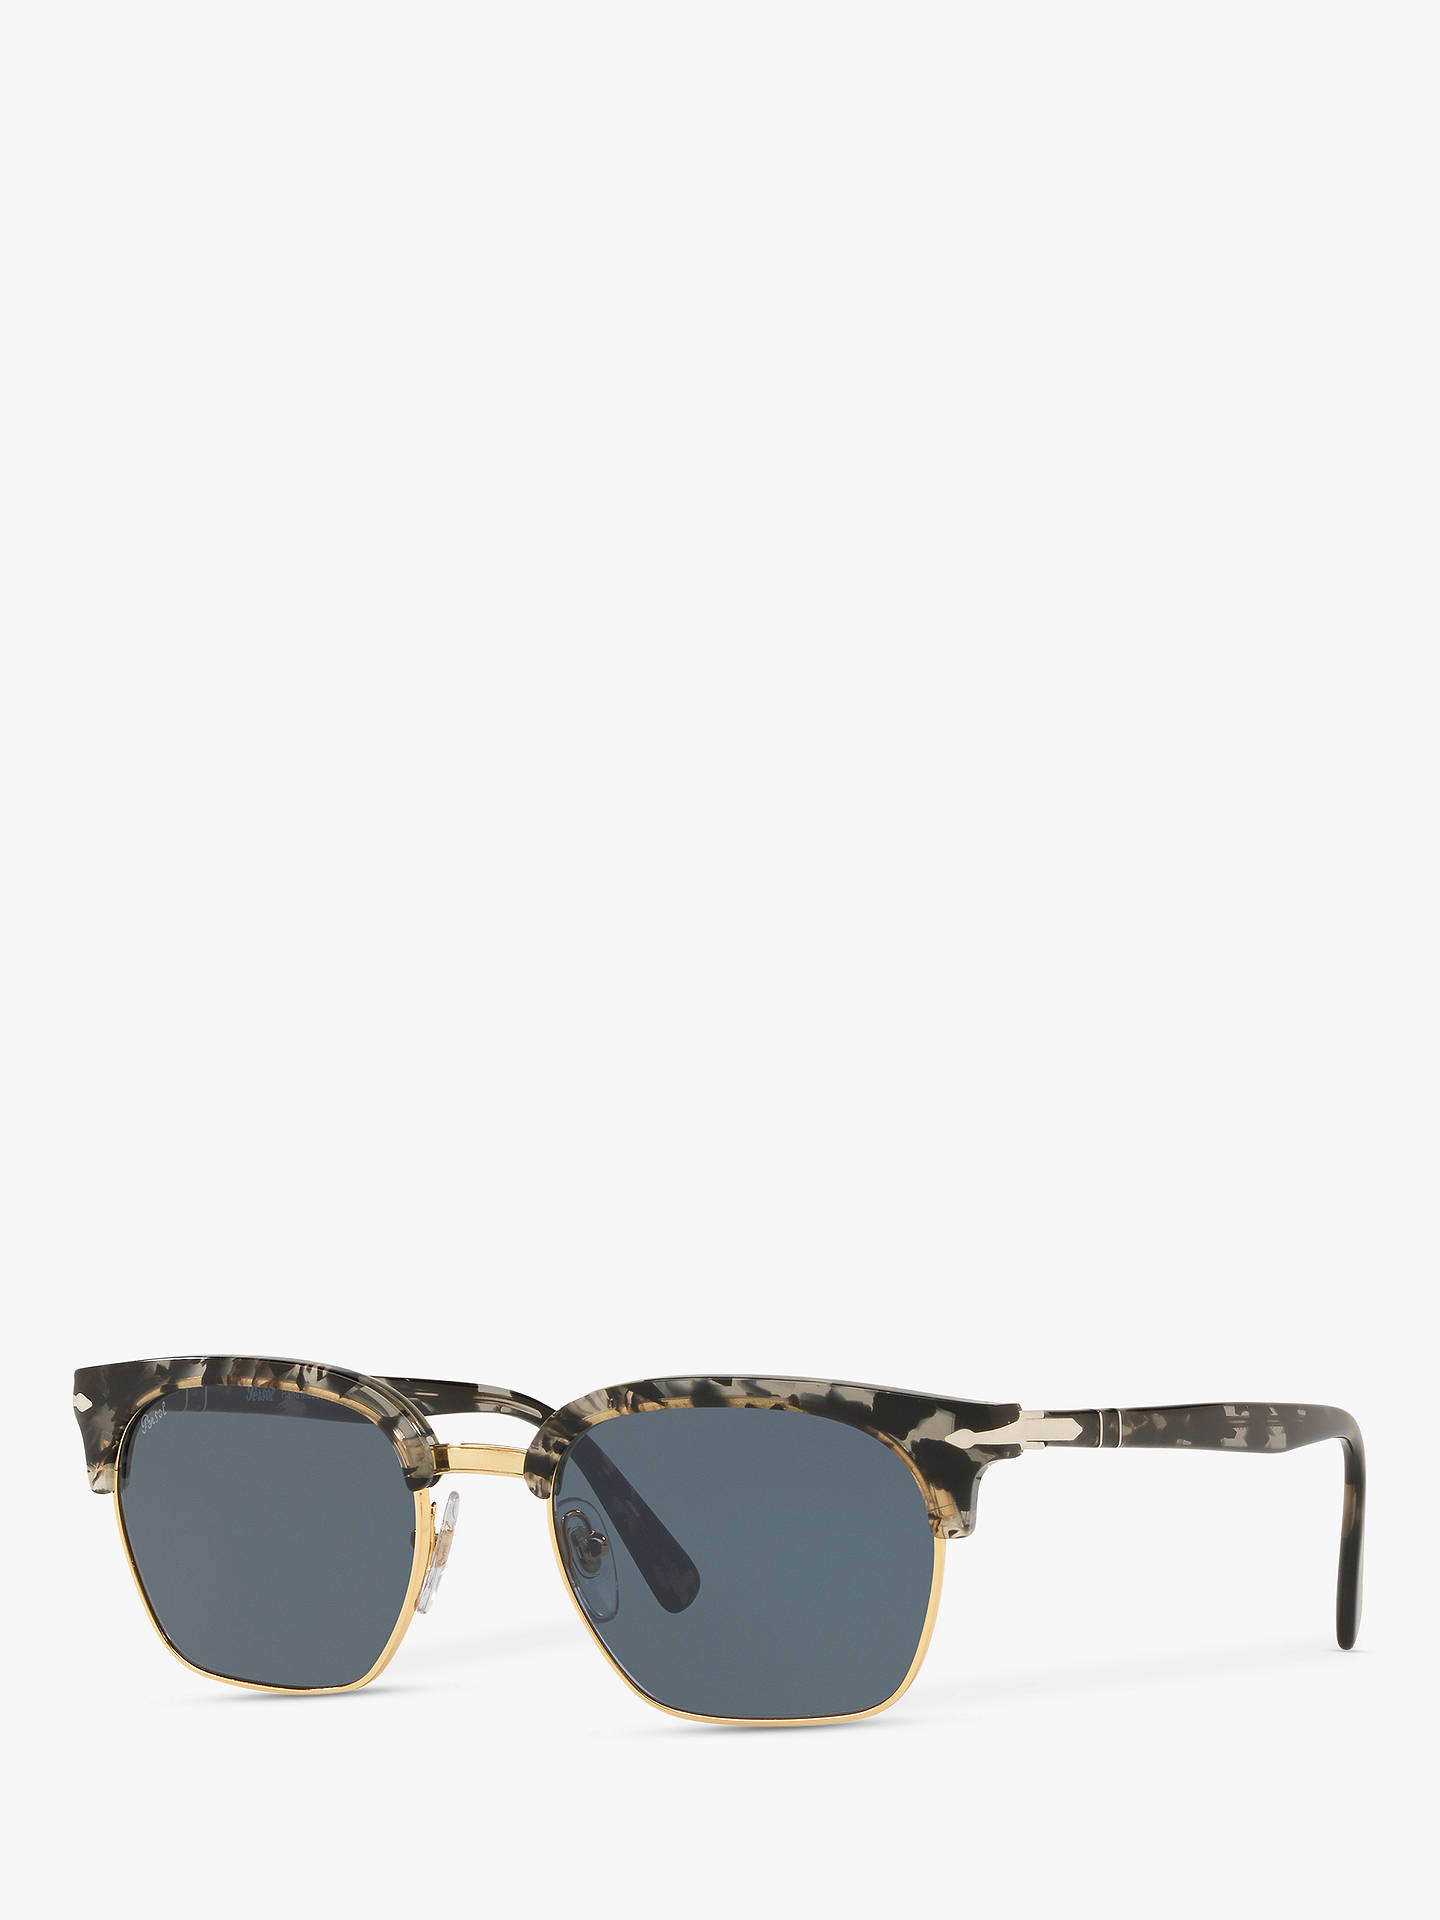 34efb36a0663 Buy Persol PO3199S Unisex Square Sunglasses, Tortoise Grey/Black Online at  johnlewis.com ...